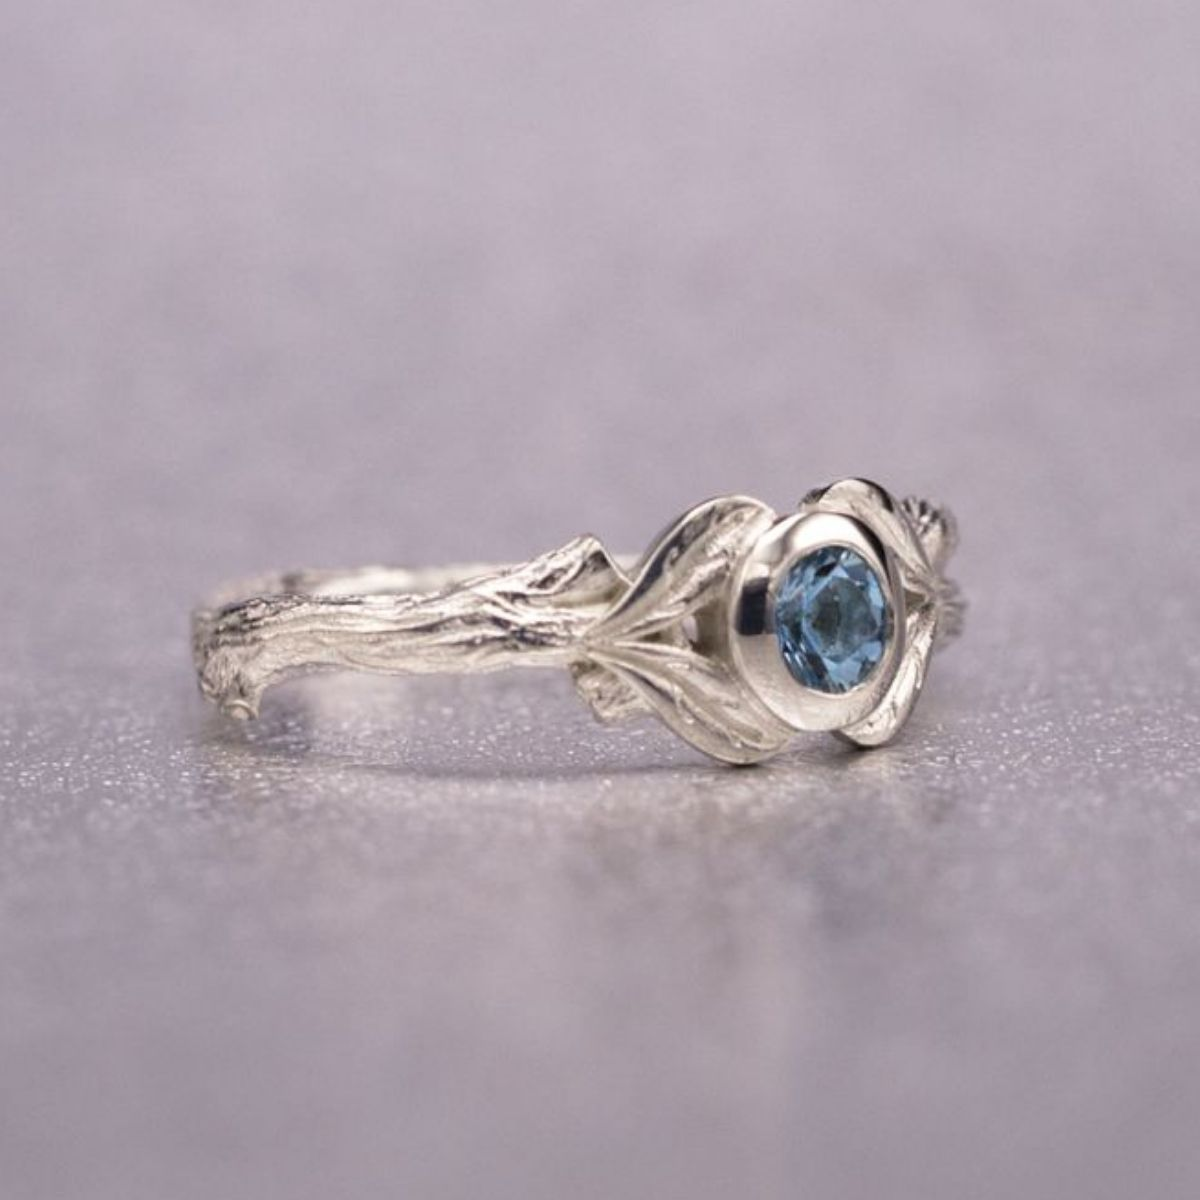 aqua harriet kelsall engagement diamond palladium ring and aquamarine sapphire rings